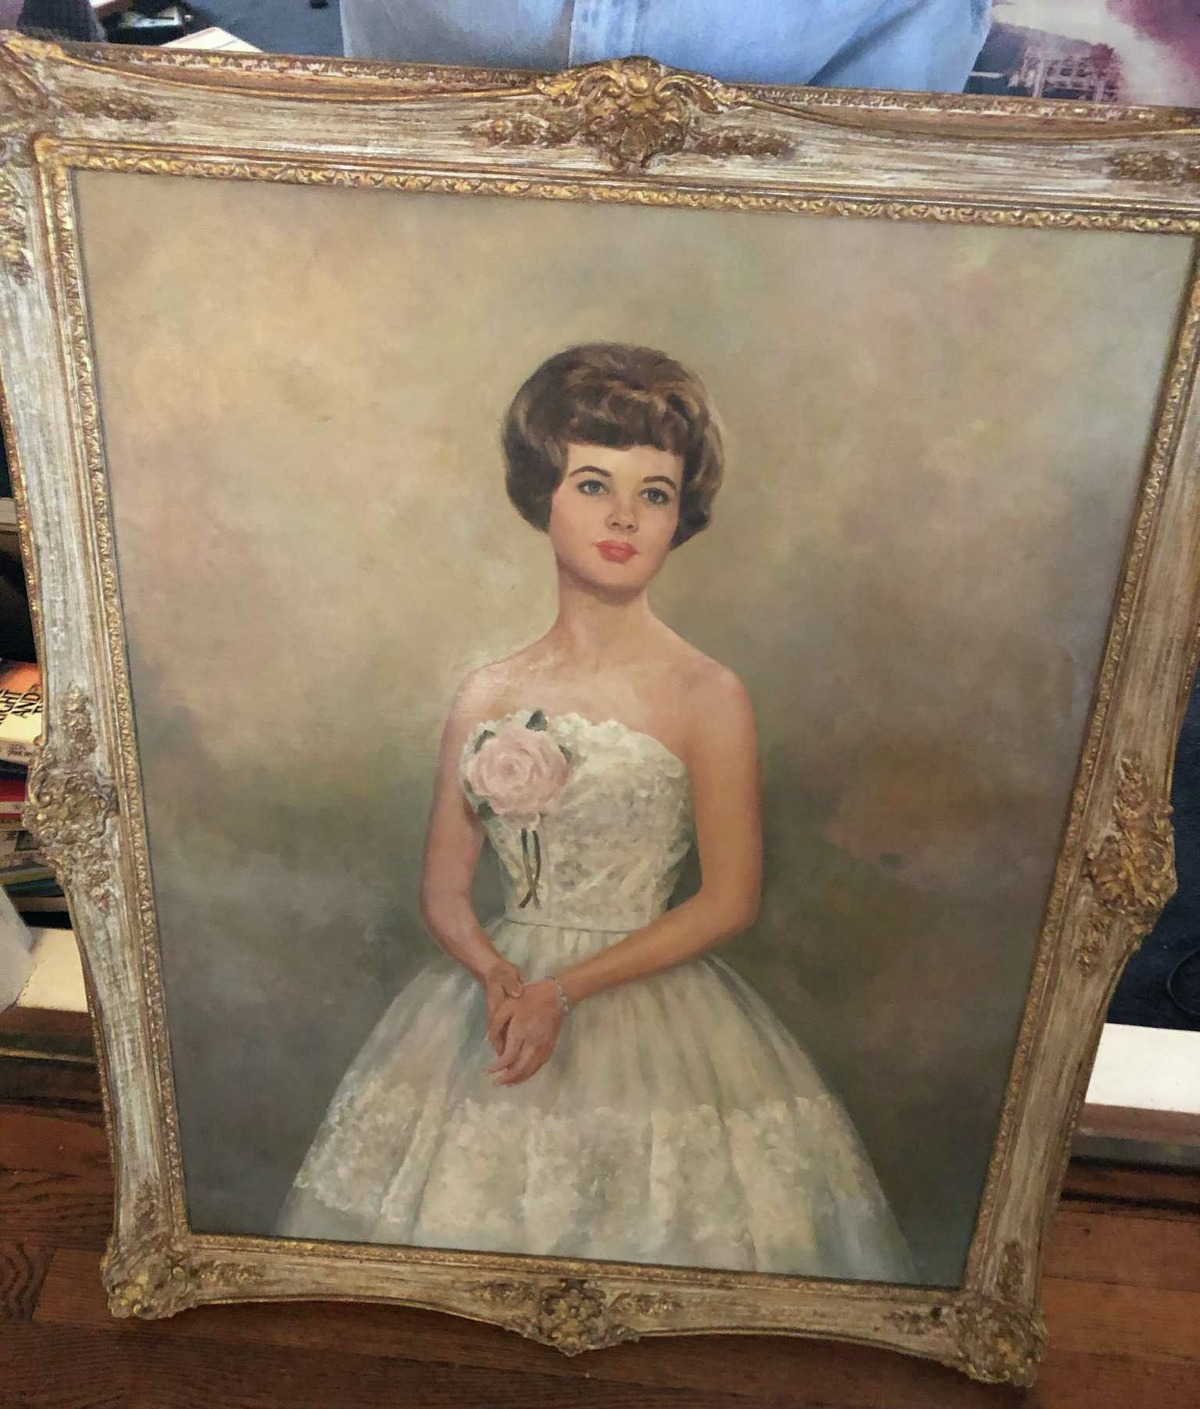 Sam Gorman sold this painted portrait of his mother, Cheri Gorman, at an estate sale and regretted it soon after. He is trying to get it back.